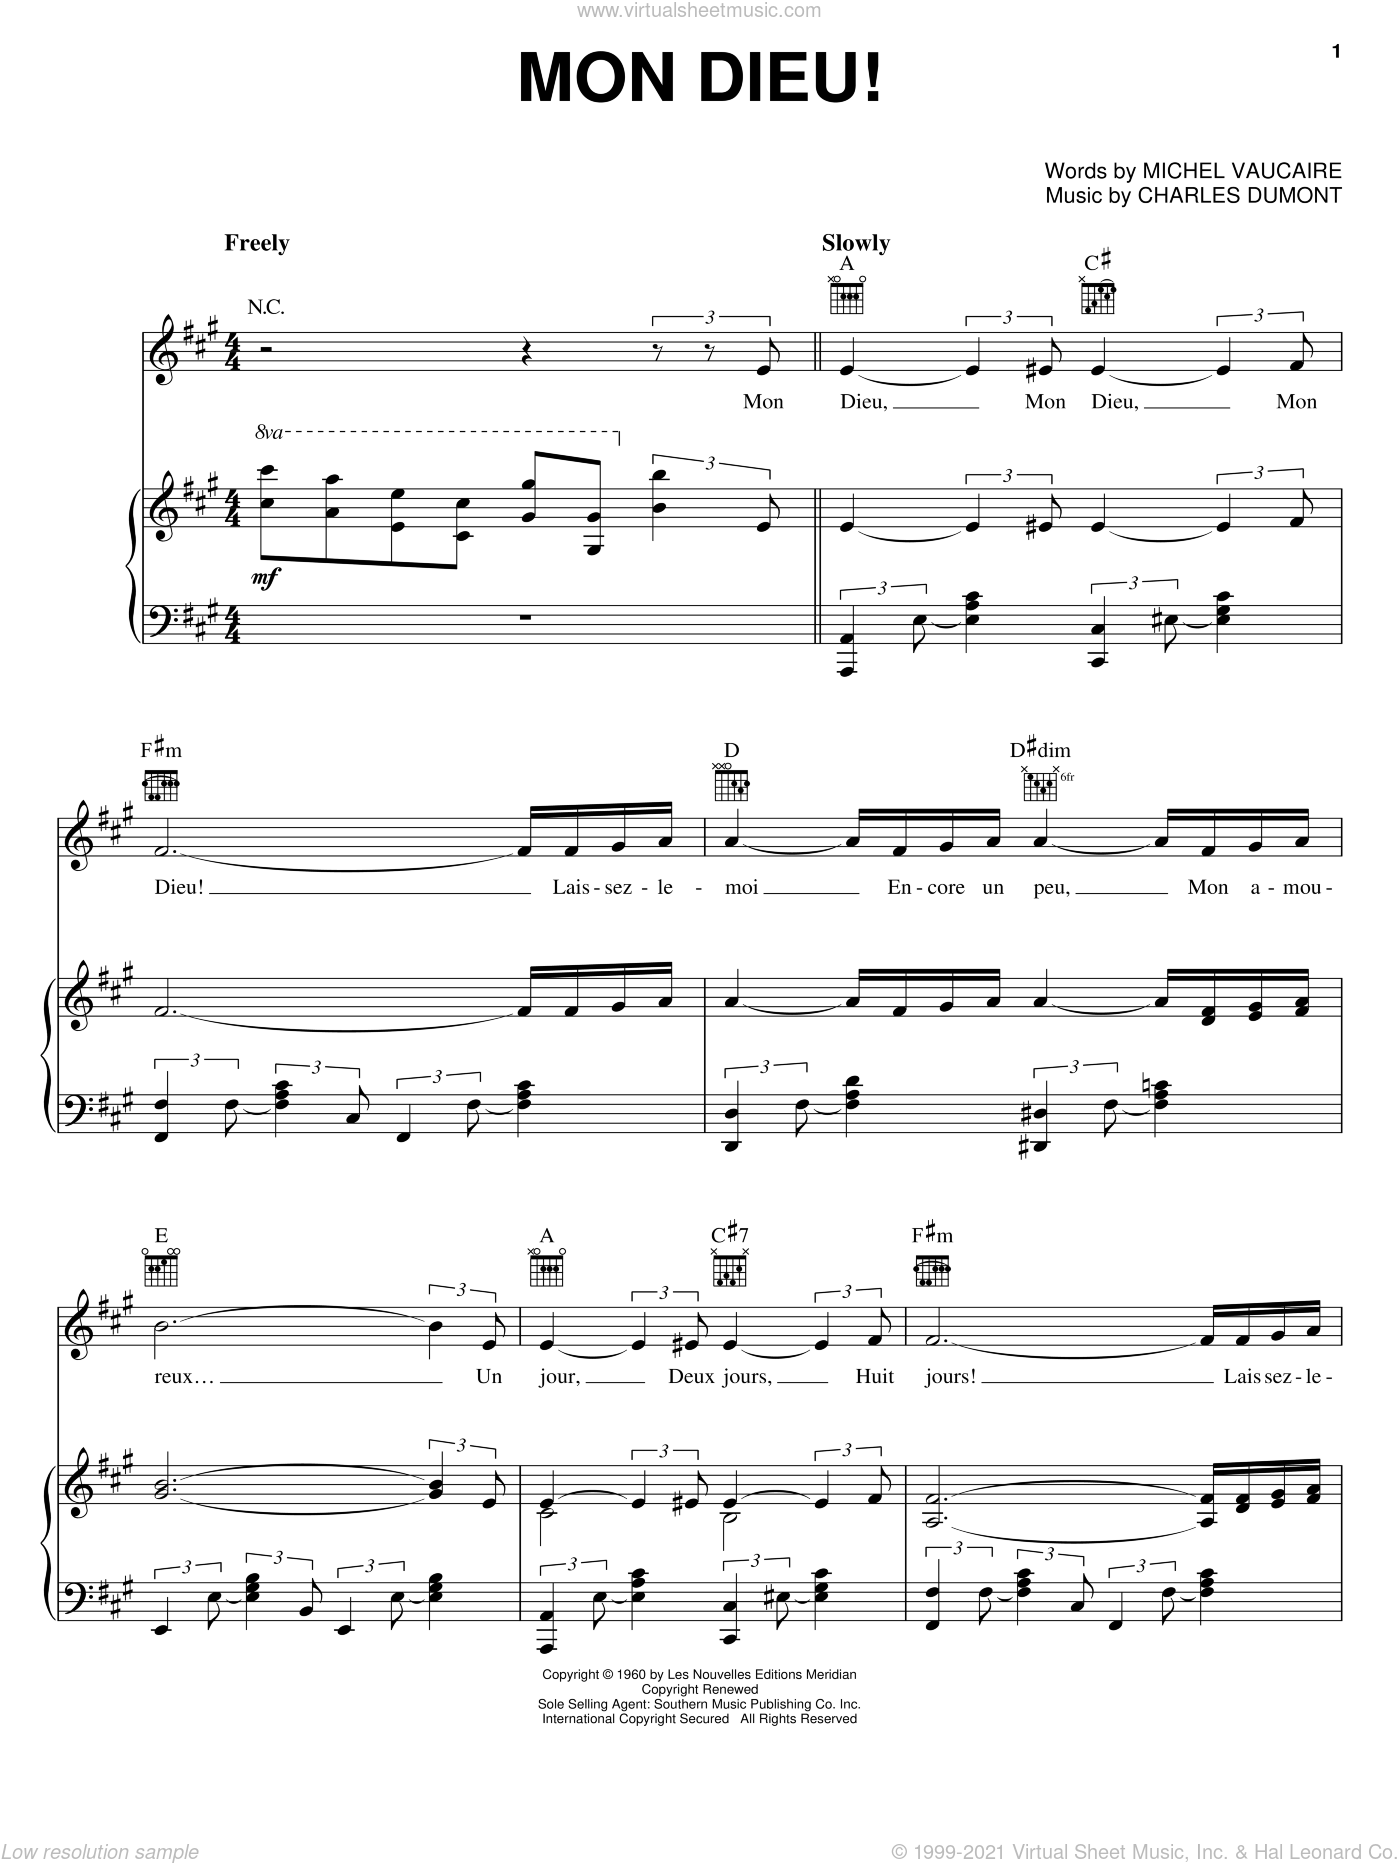 Mon Dieu! sheet music for voice, piano or guitar by Michel Vaucaire